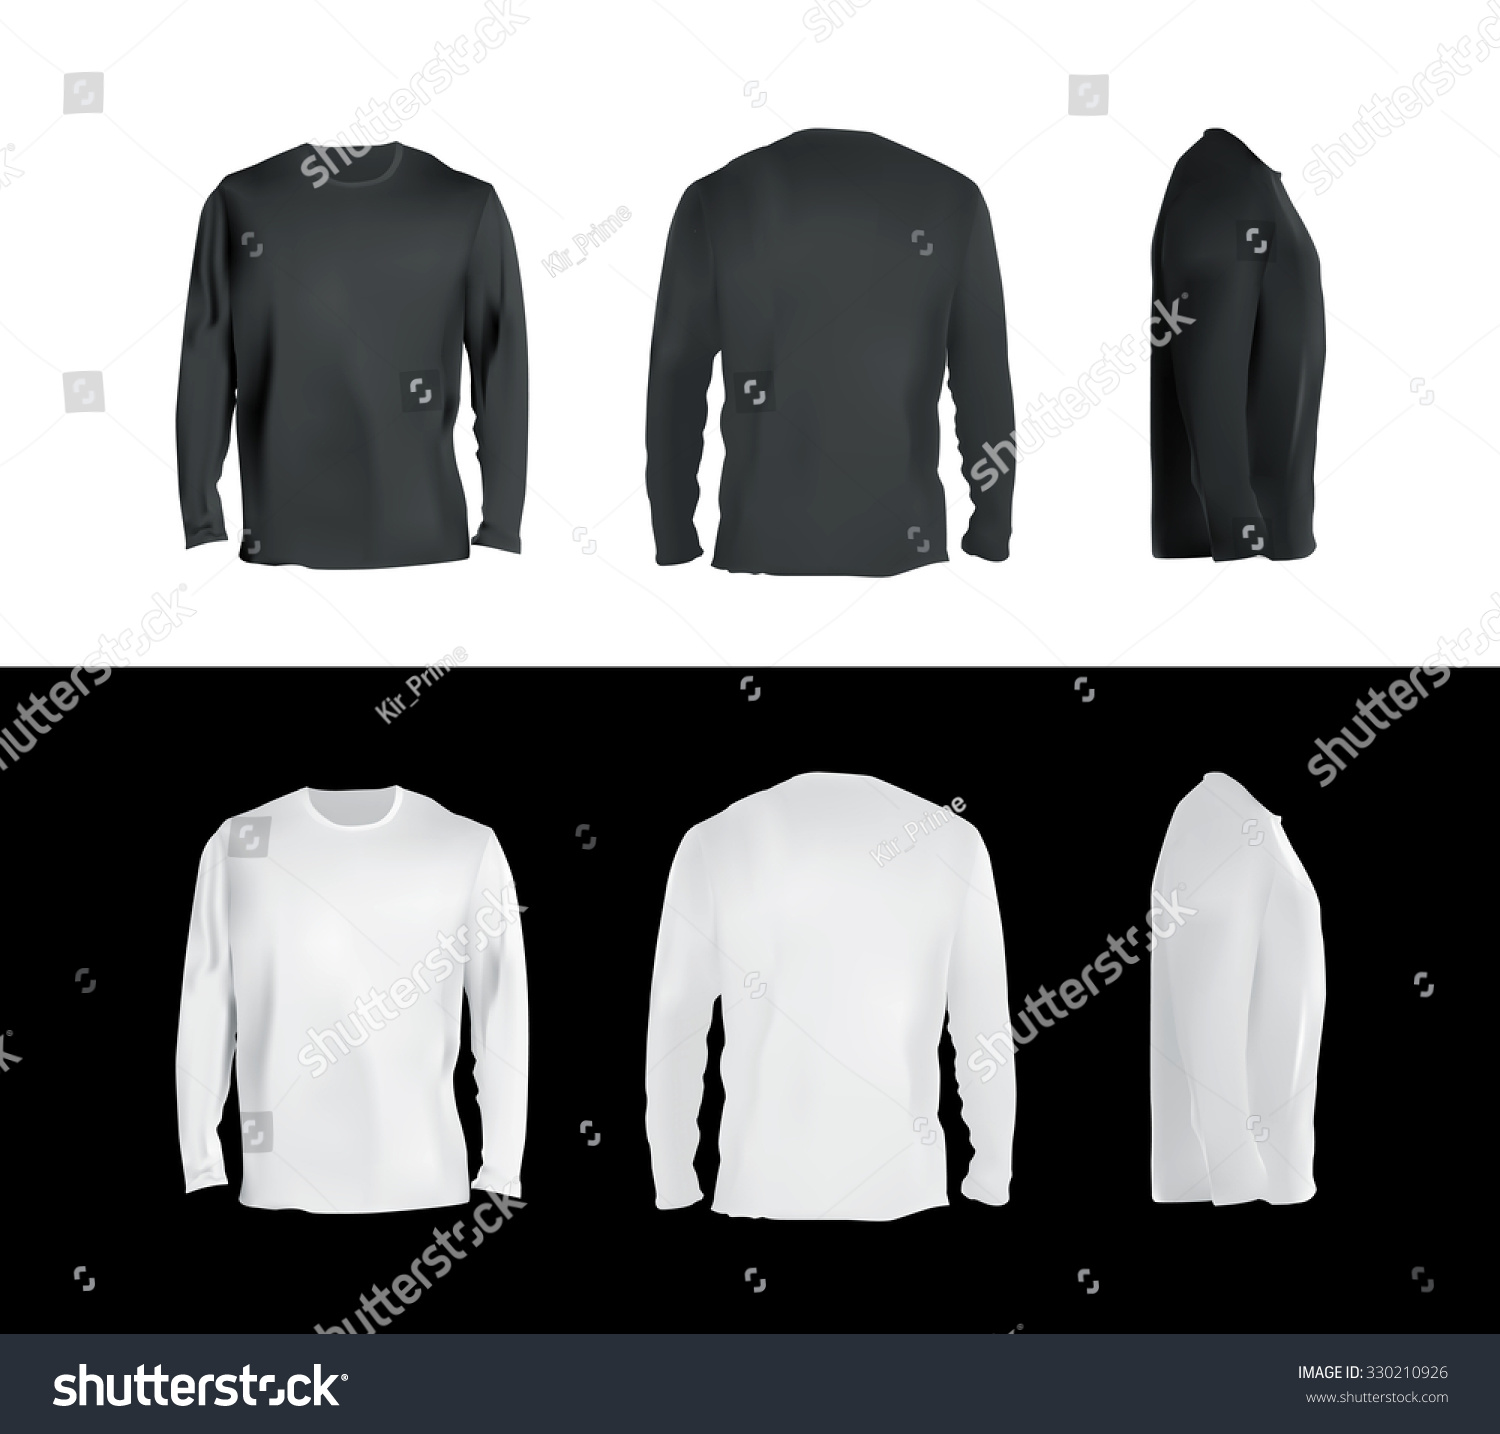 Black t shirt plain front and back -  T Shirt Templates Collection Front Back Download